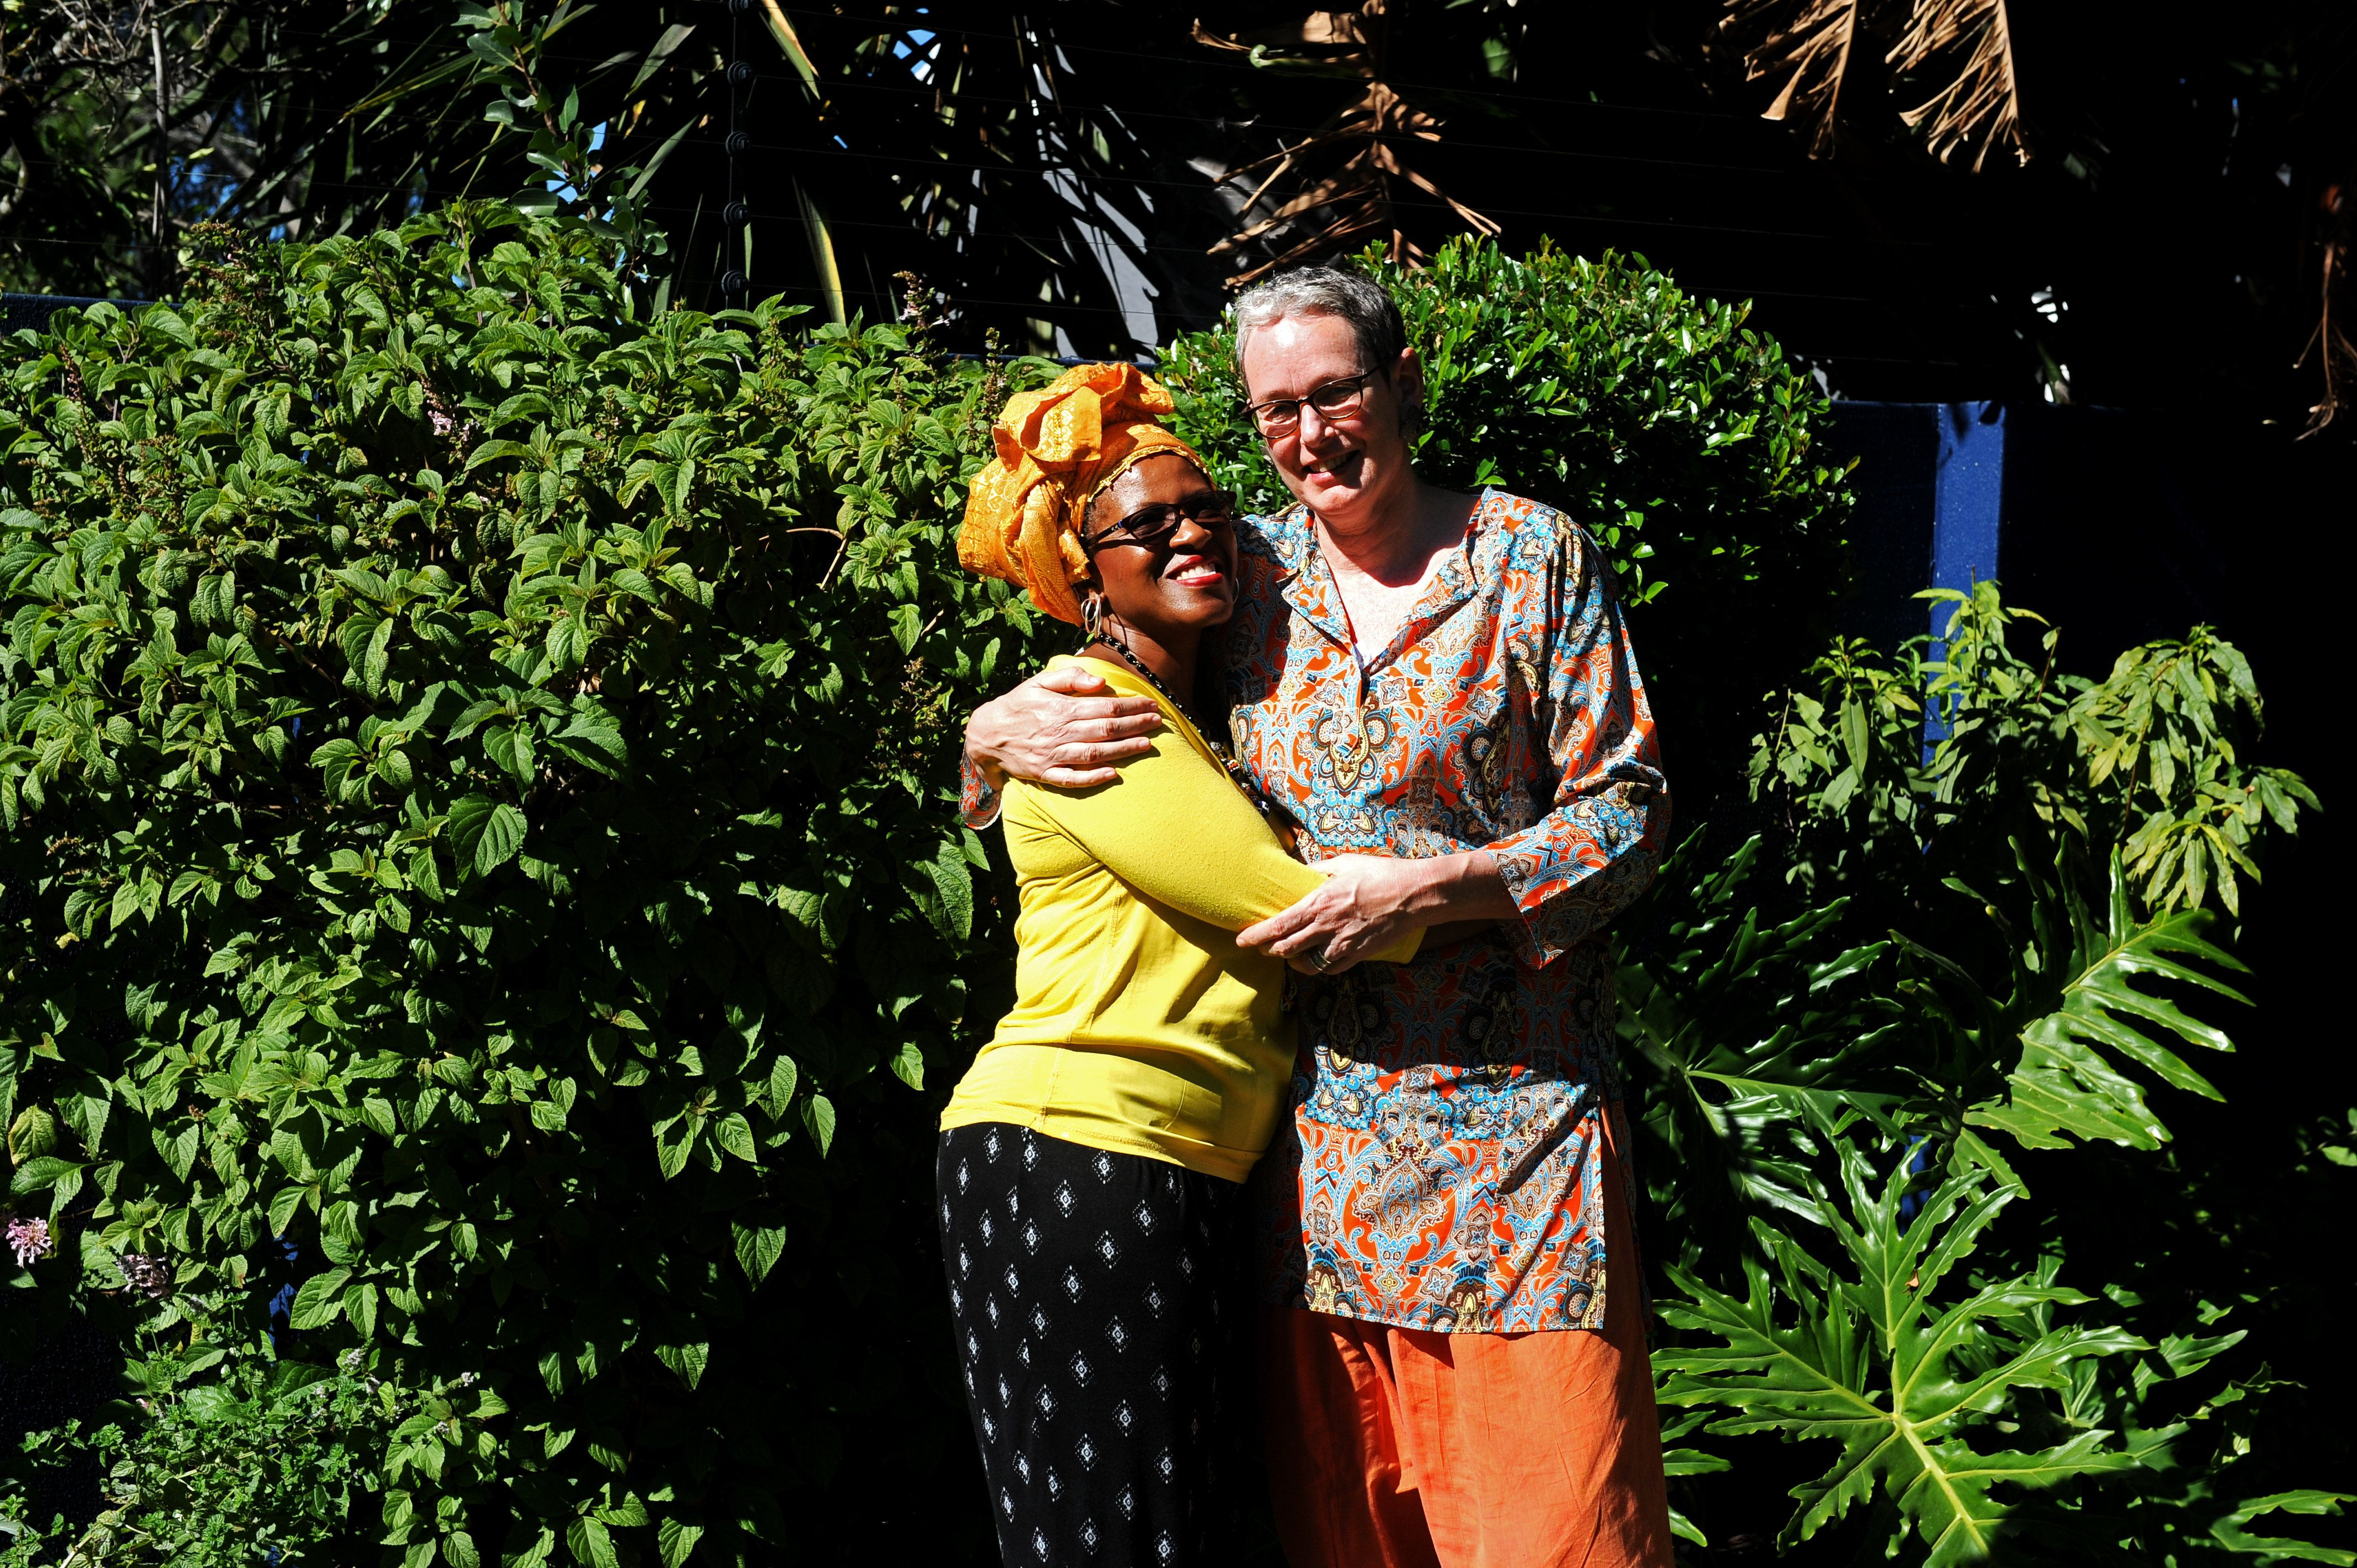 CAPE TOWN, SOUTH AFRICA  MARCH 12 (SOUTH AFRICA OUT): The daughter of Archbishop Emeritus Tutu, Reverend Mpho Tutu and her wife, Professor Marceline Furth embrace during an interview on March 12, 2016 at their home in Cape Town, South Africa. The two celebrated their union in an intimate wedding ceremony. (Photo by Lerato Maduna/Foto24/Gallo Images/ Getty Images)